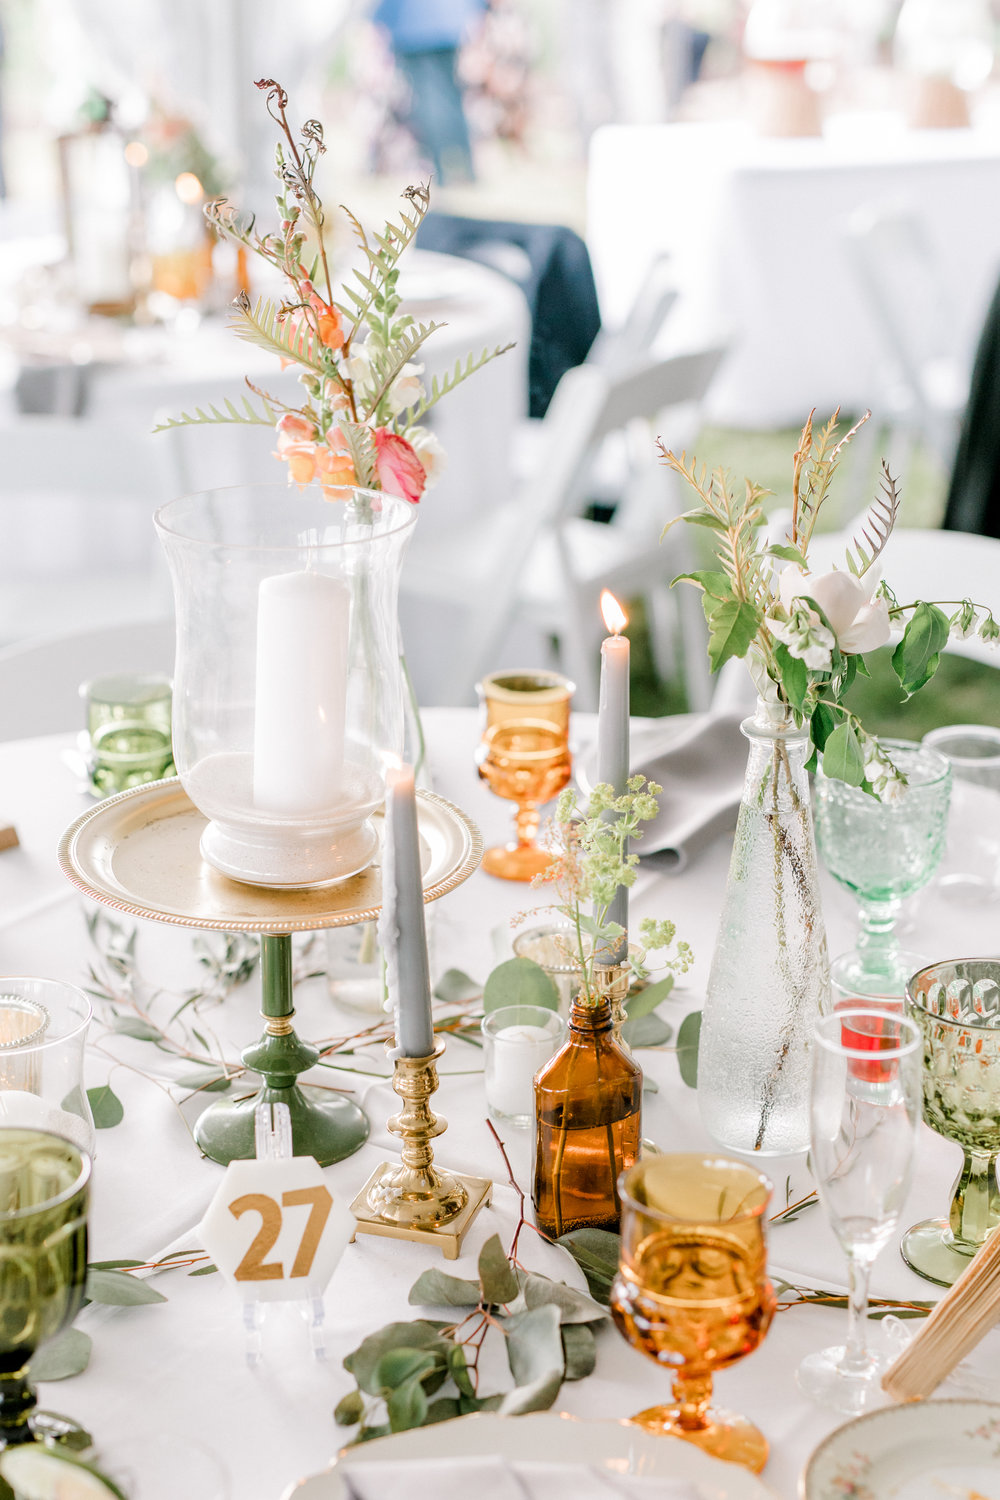 haley-richter-photography-ecclectic-glass-bottle-centerpiece-whimsical-table-candles-gold-candlesticks-blue-candles-glass-goblets-stone-gold-table-numbers